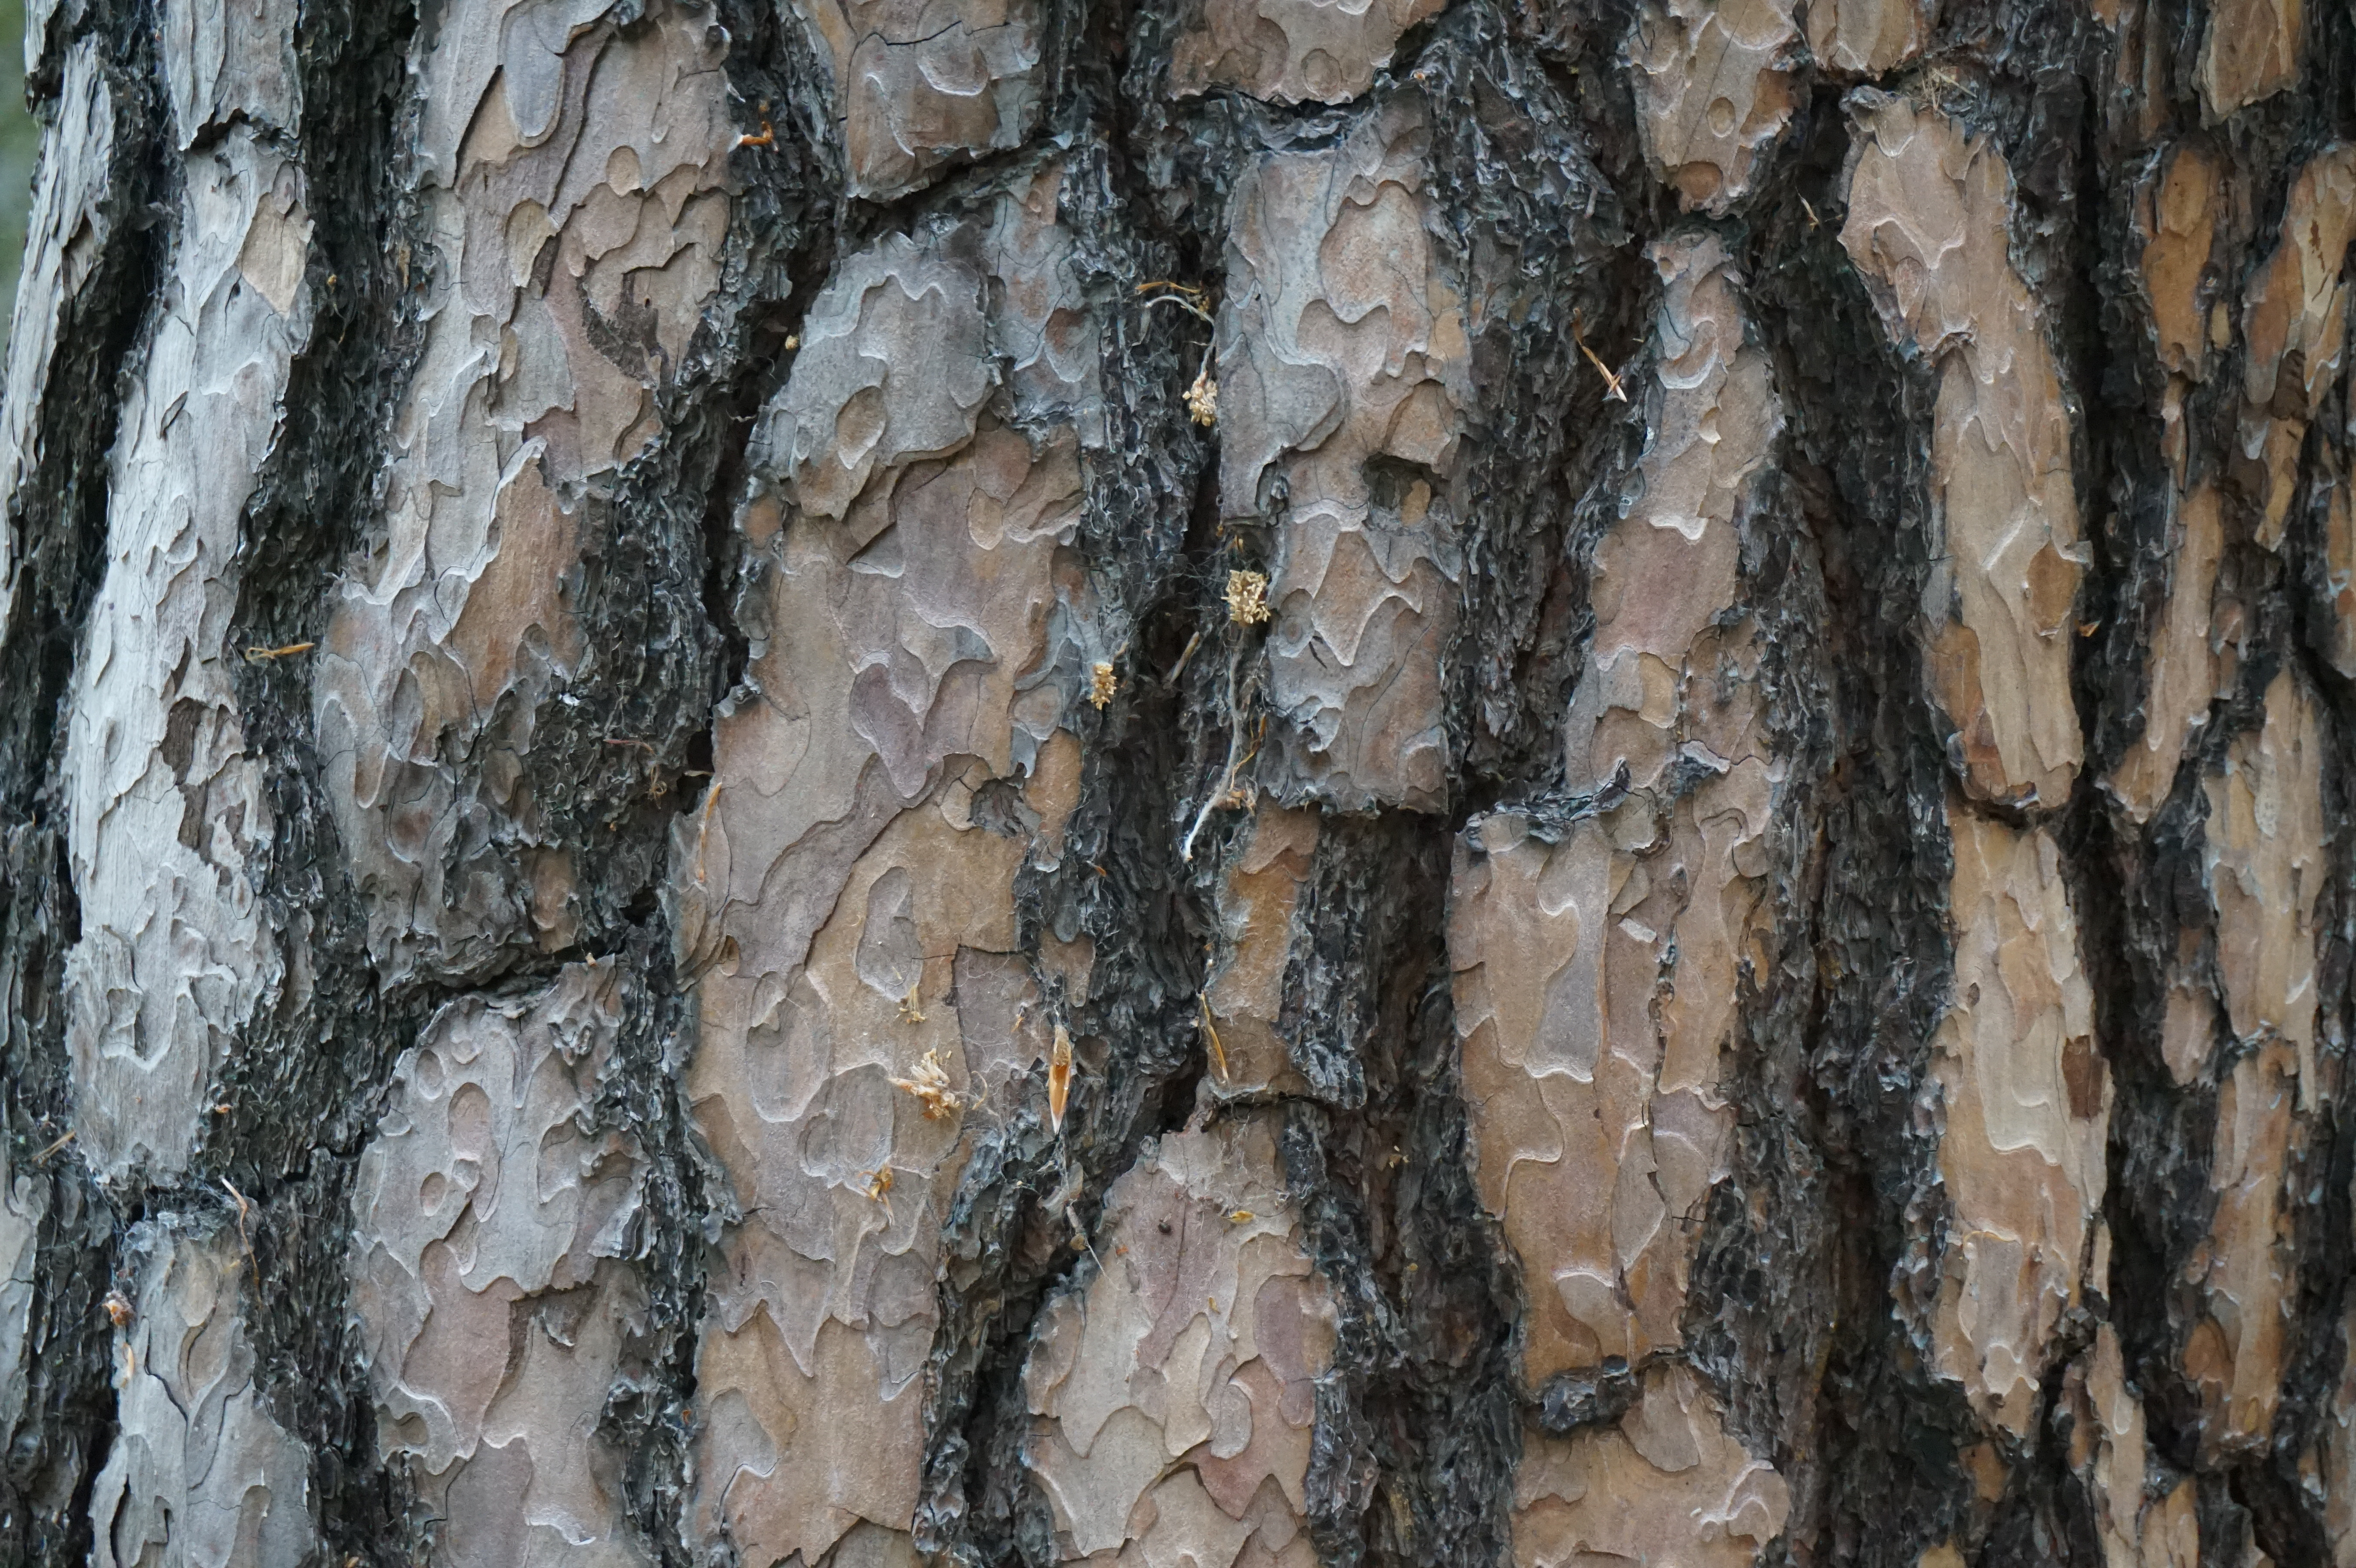 Tree Bark-002 - Nature - Texturify - Free textures